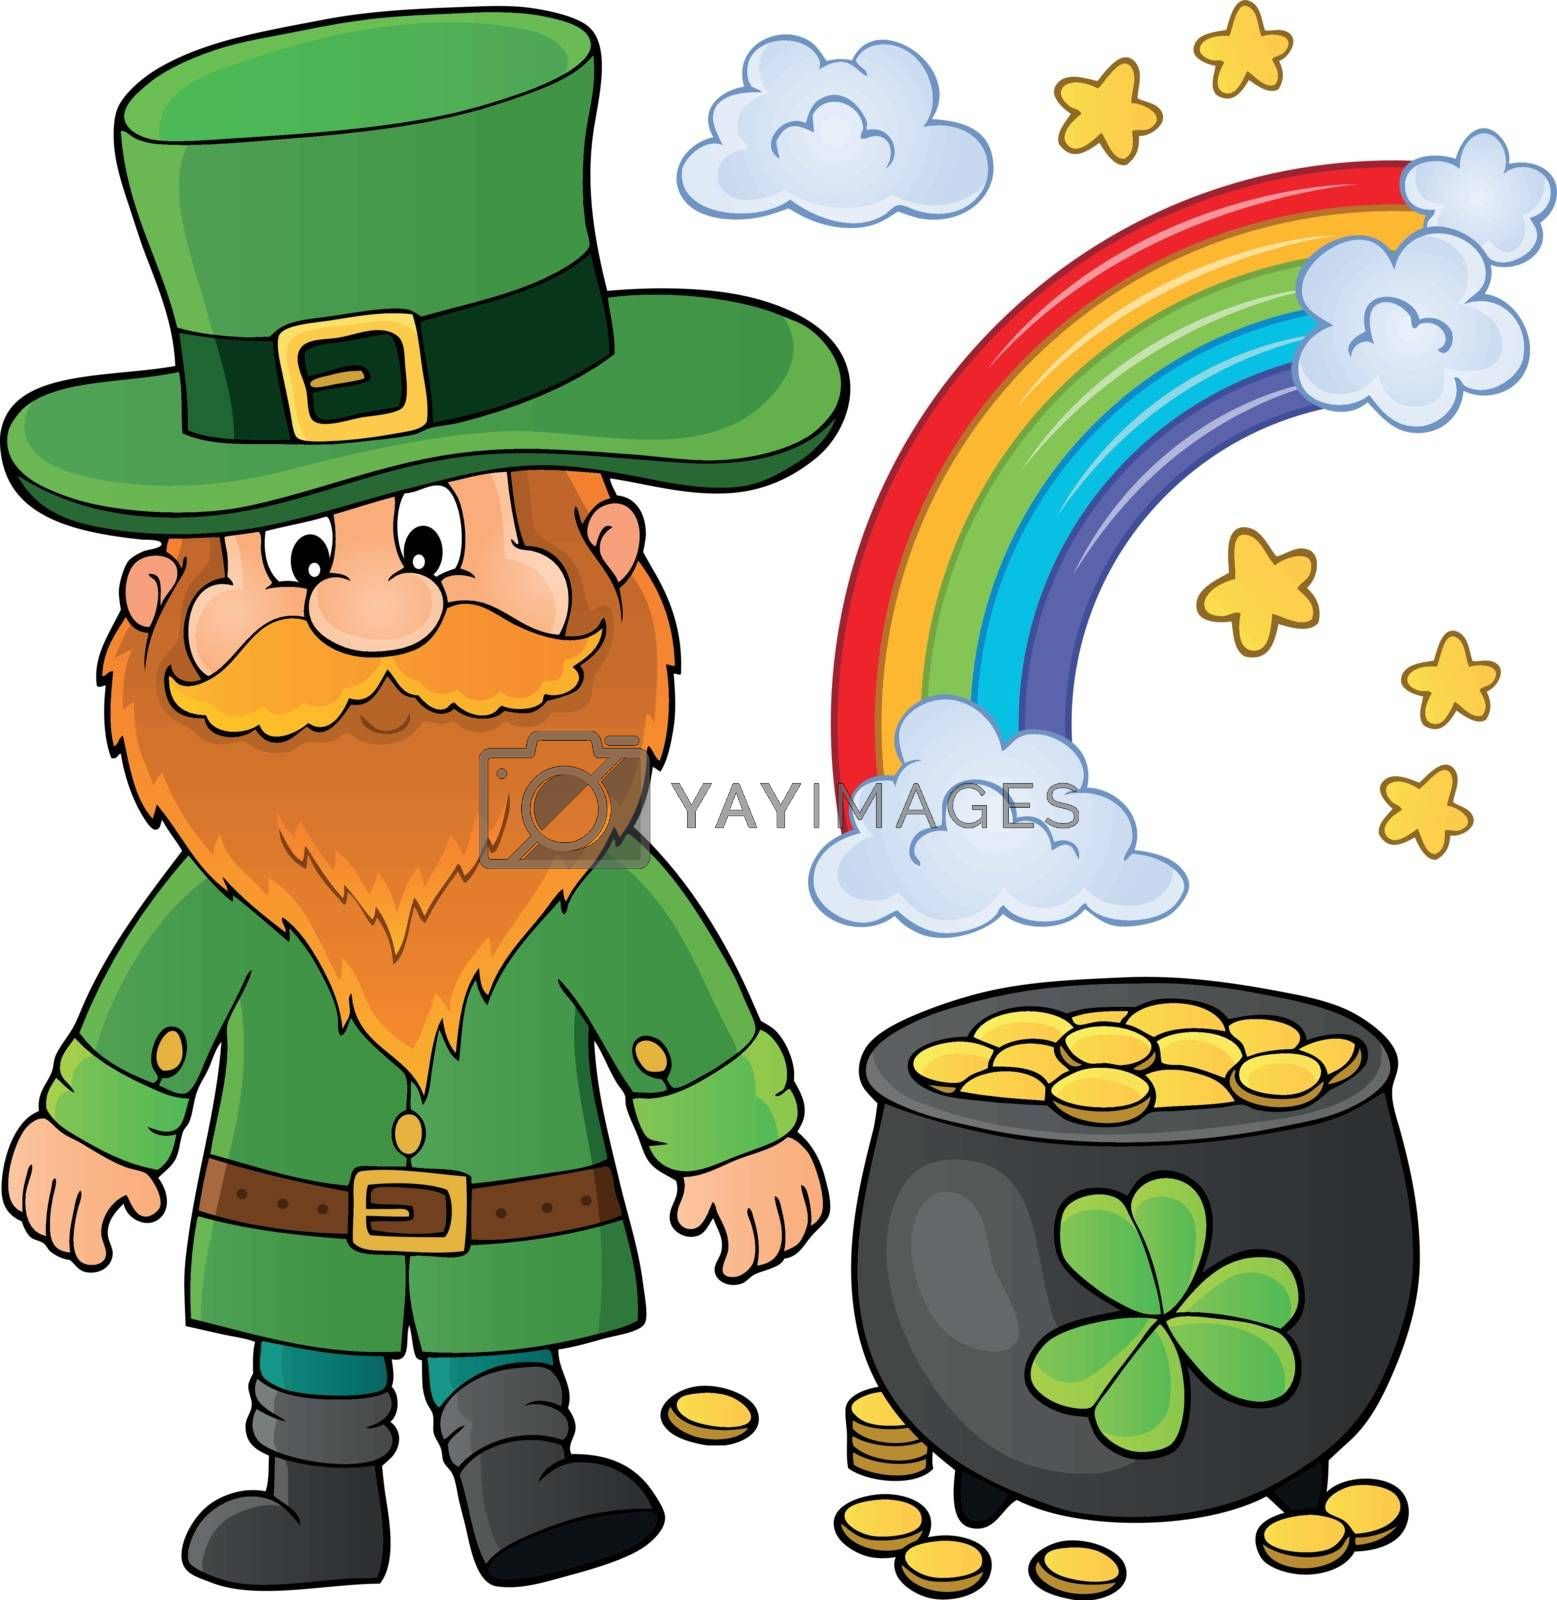 St Patricks Day theme image 1 - eps10 vector illustration.